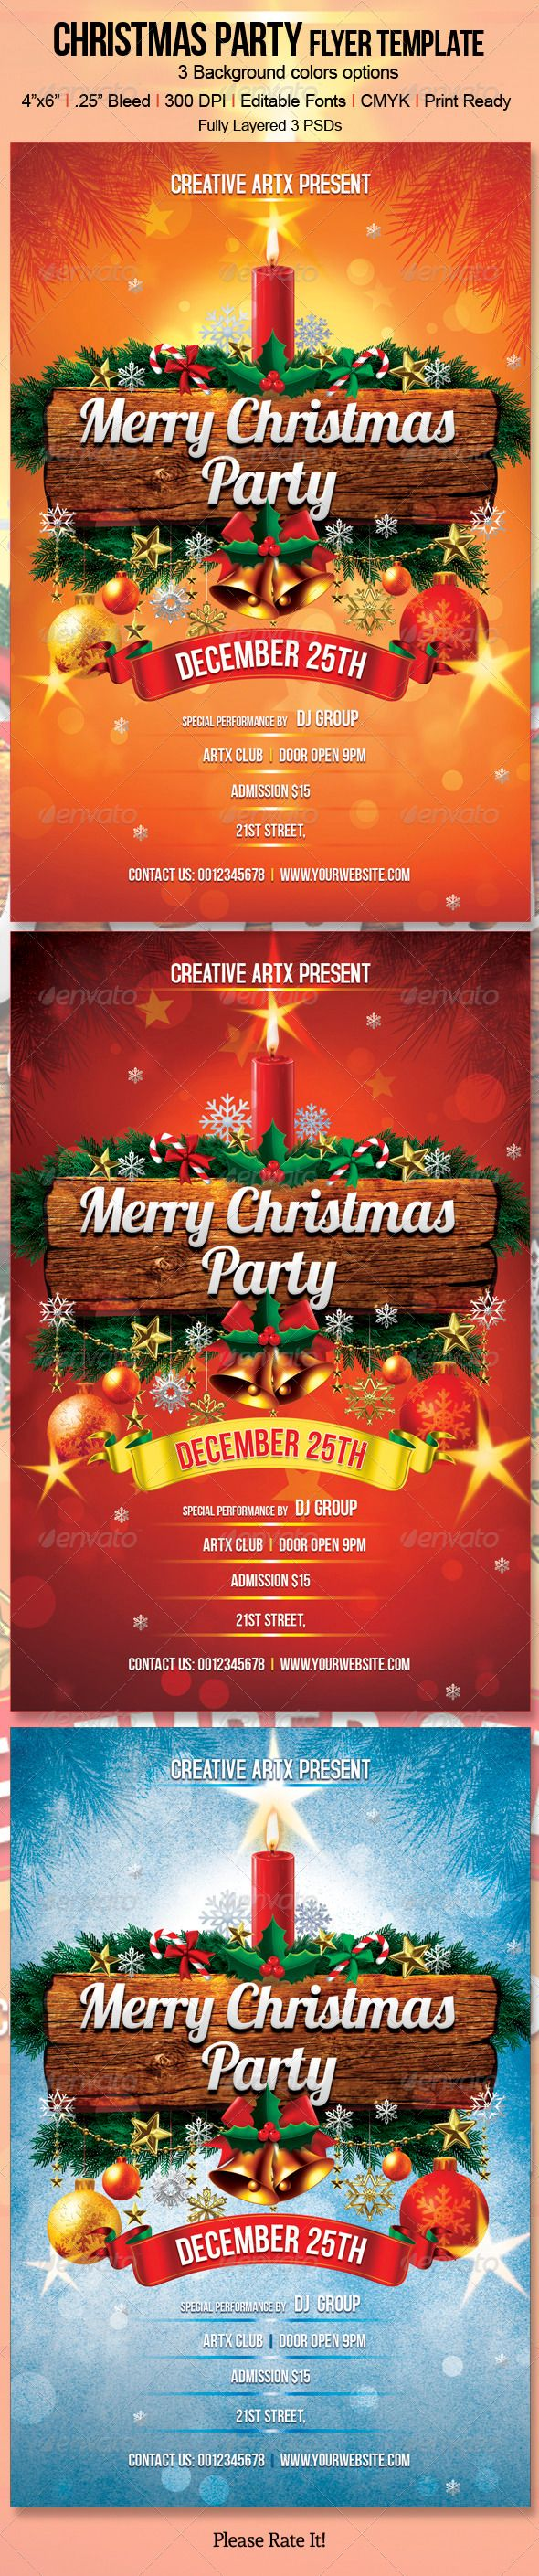 17 best images about event posters christmas christmas party flyer template